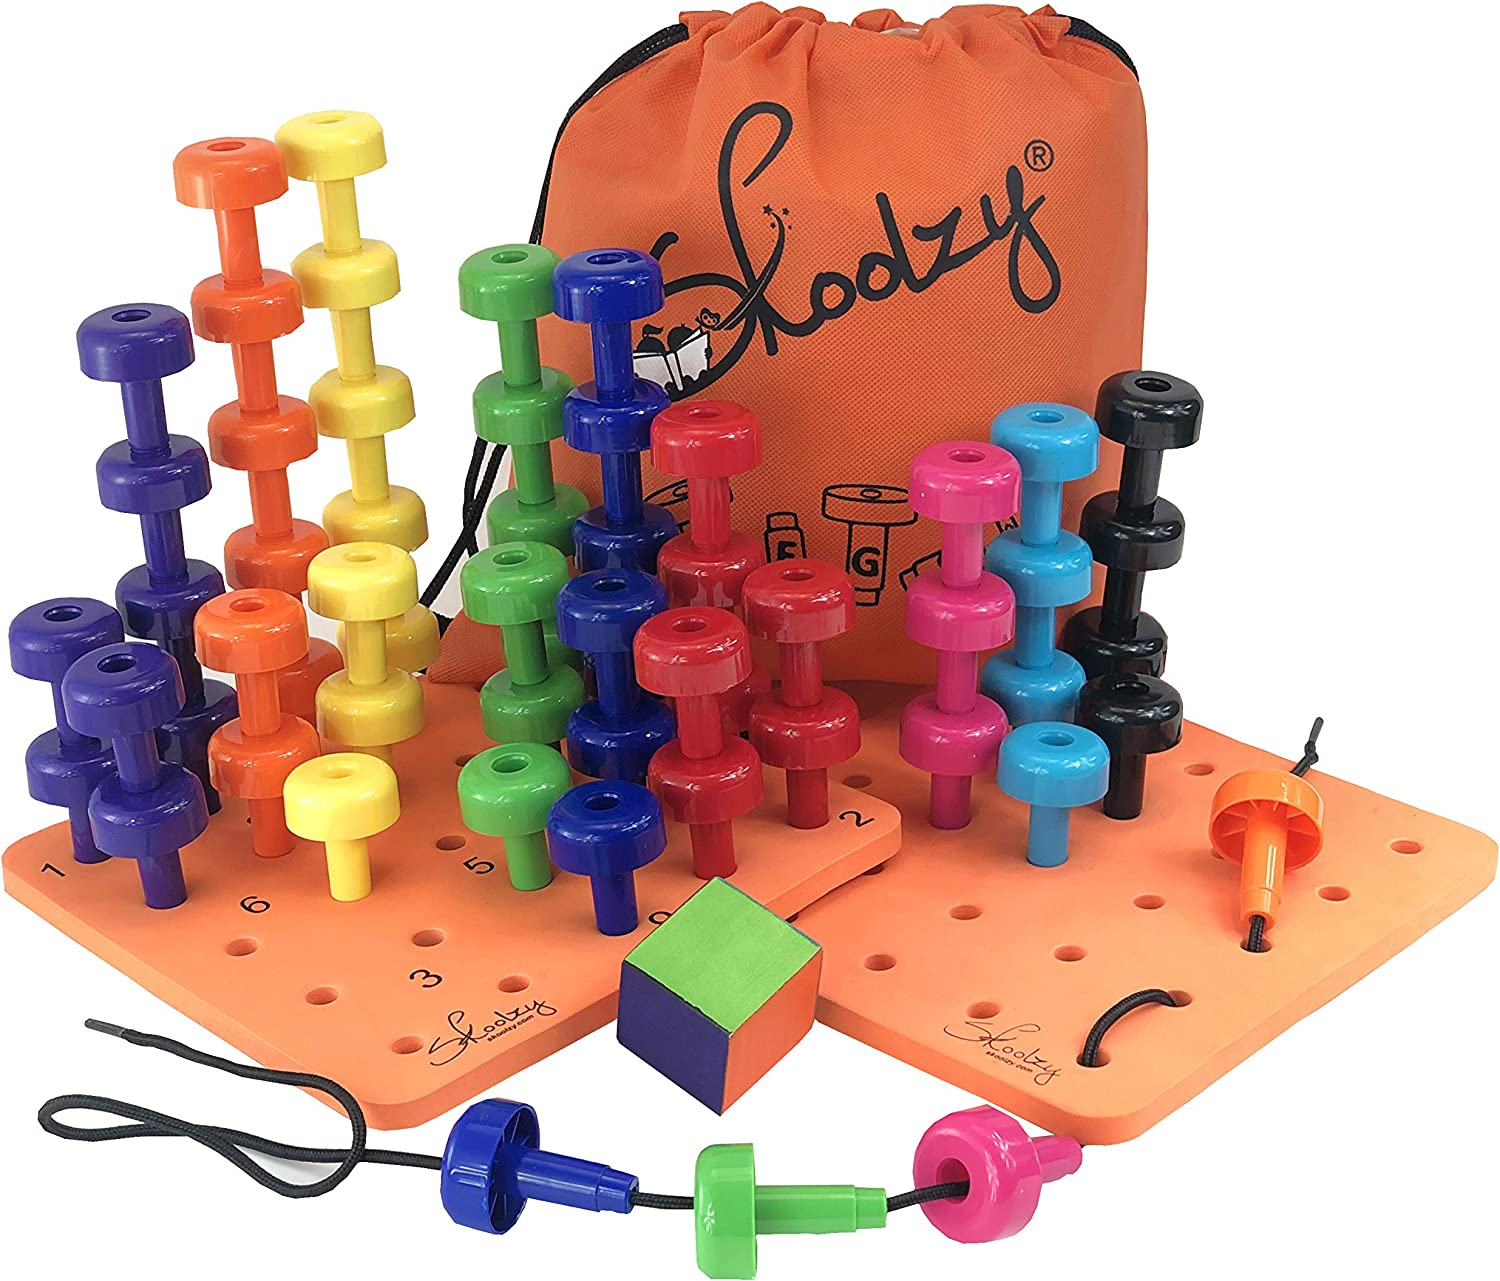 Montessori Peg Board Toddler Occupational Therapy Fine Motor Skills Toys - Skoolzy Counting, Color Sorting Toy for Girls, Boys Ages 18 Months+ | 60 Pegs Sensory Stacking Blocks, Dice, Lacing, Ebook